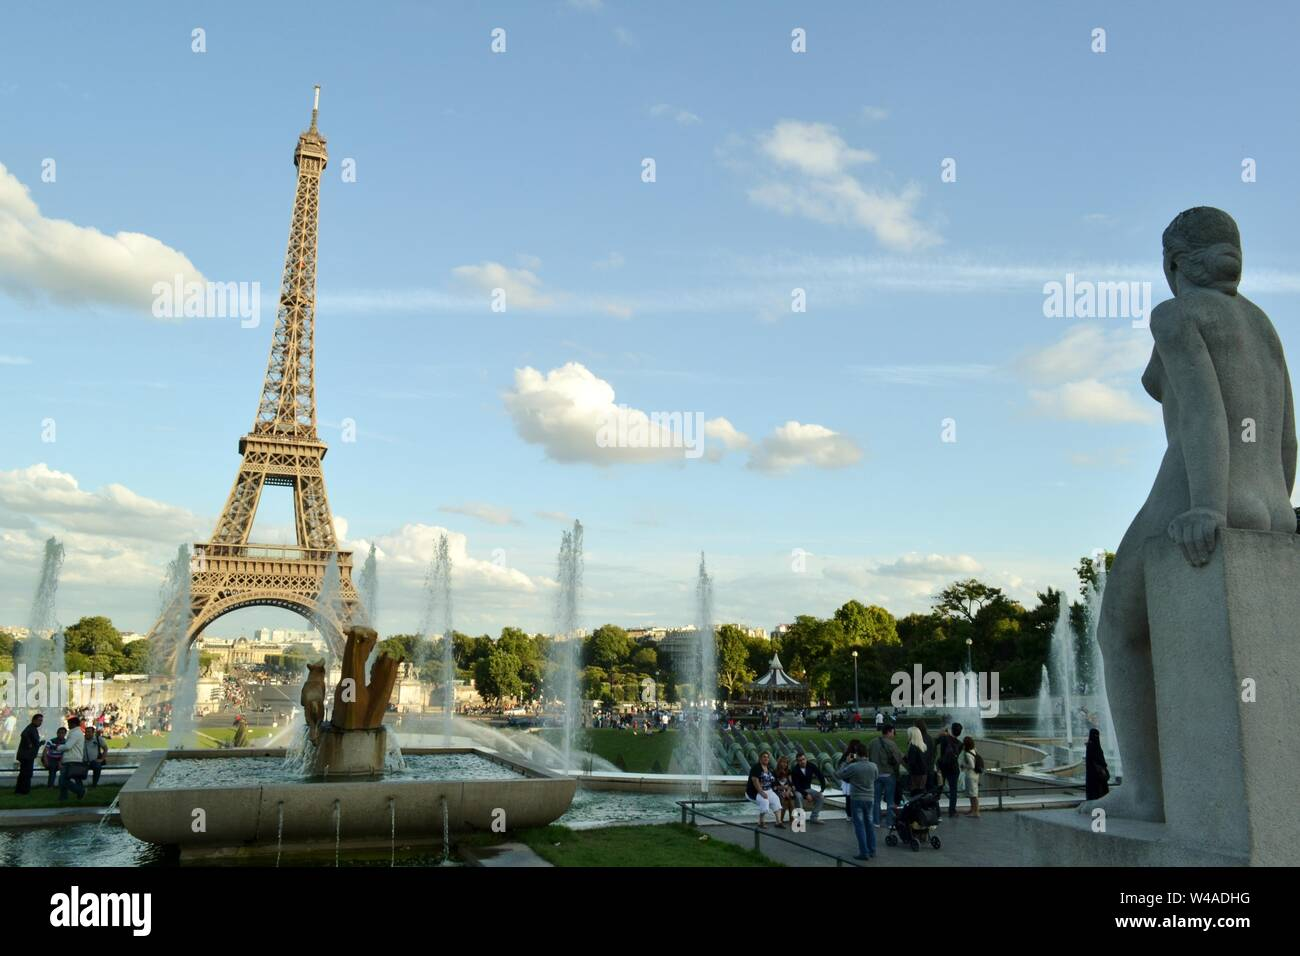 Paris/France - August 18, 2014: View to the statue called Woman, la Femme, of the fountain of Warsaw and the Eiffel Tower in the background. Stock Photo